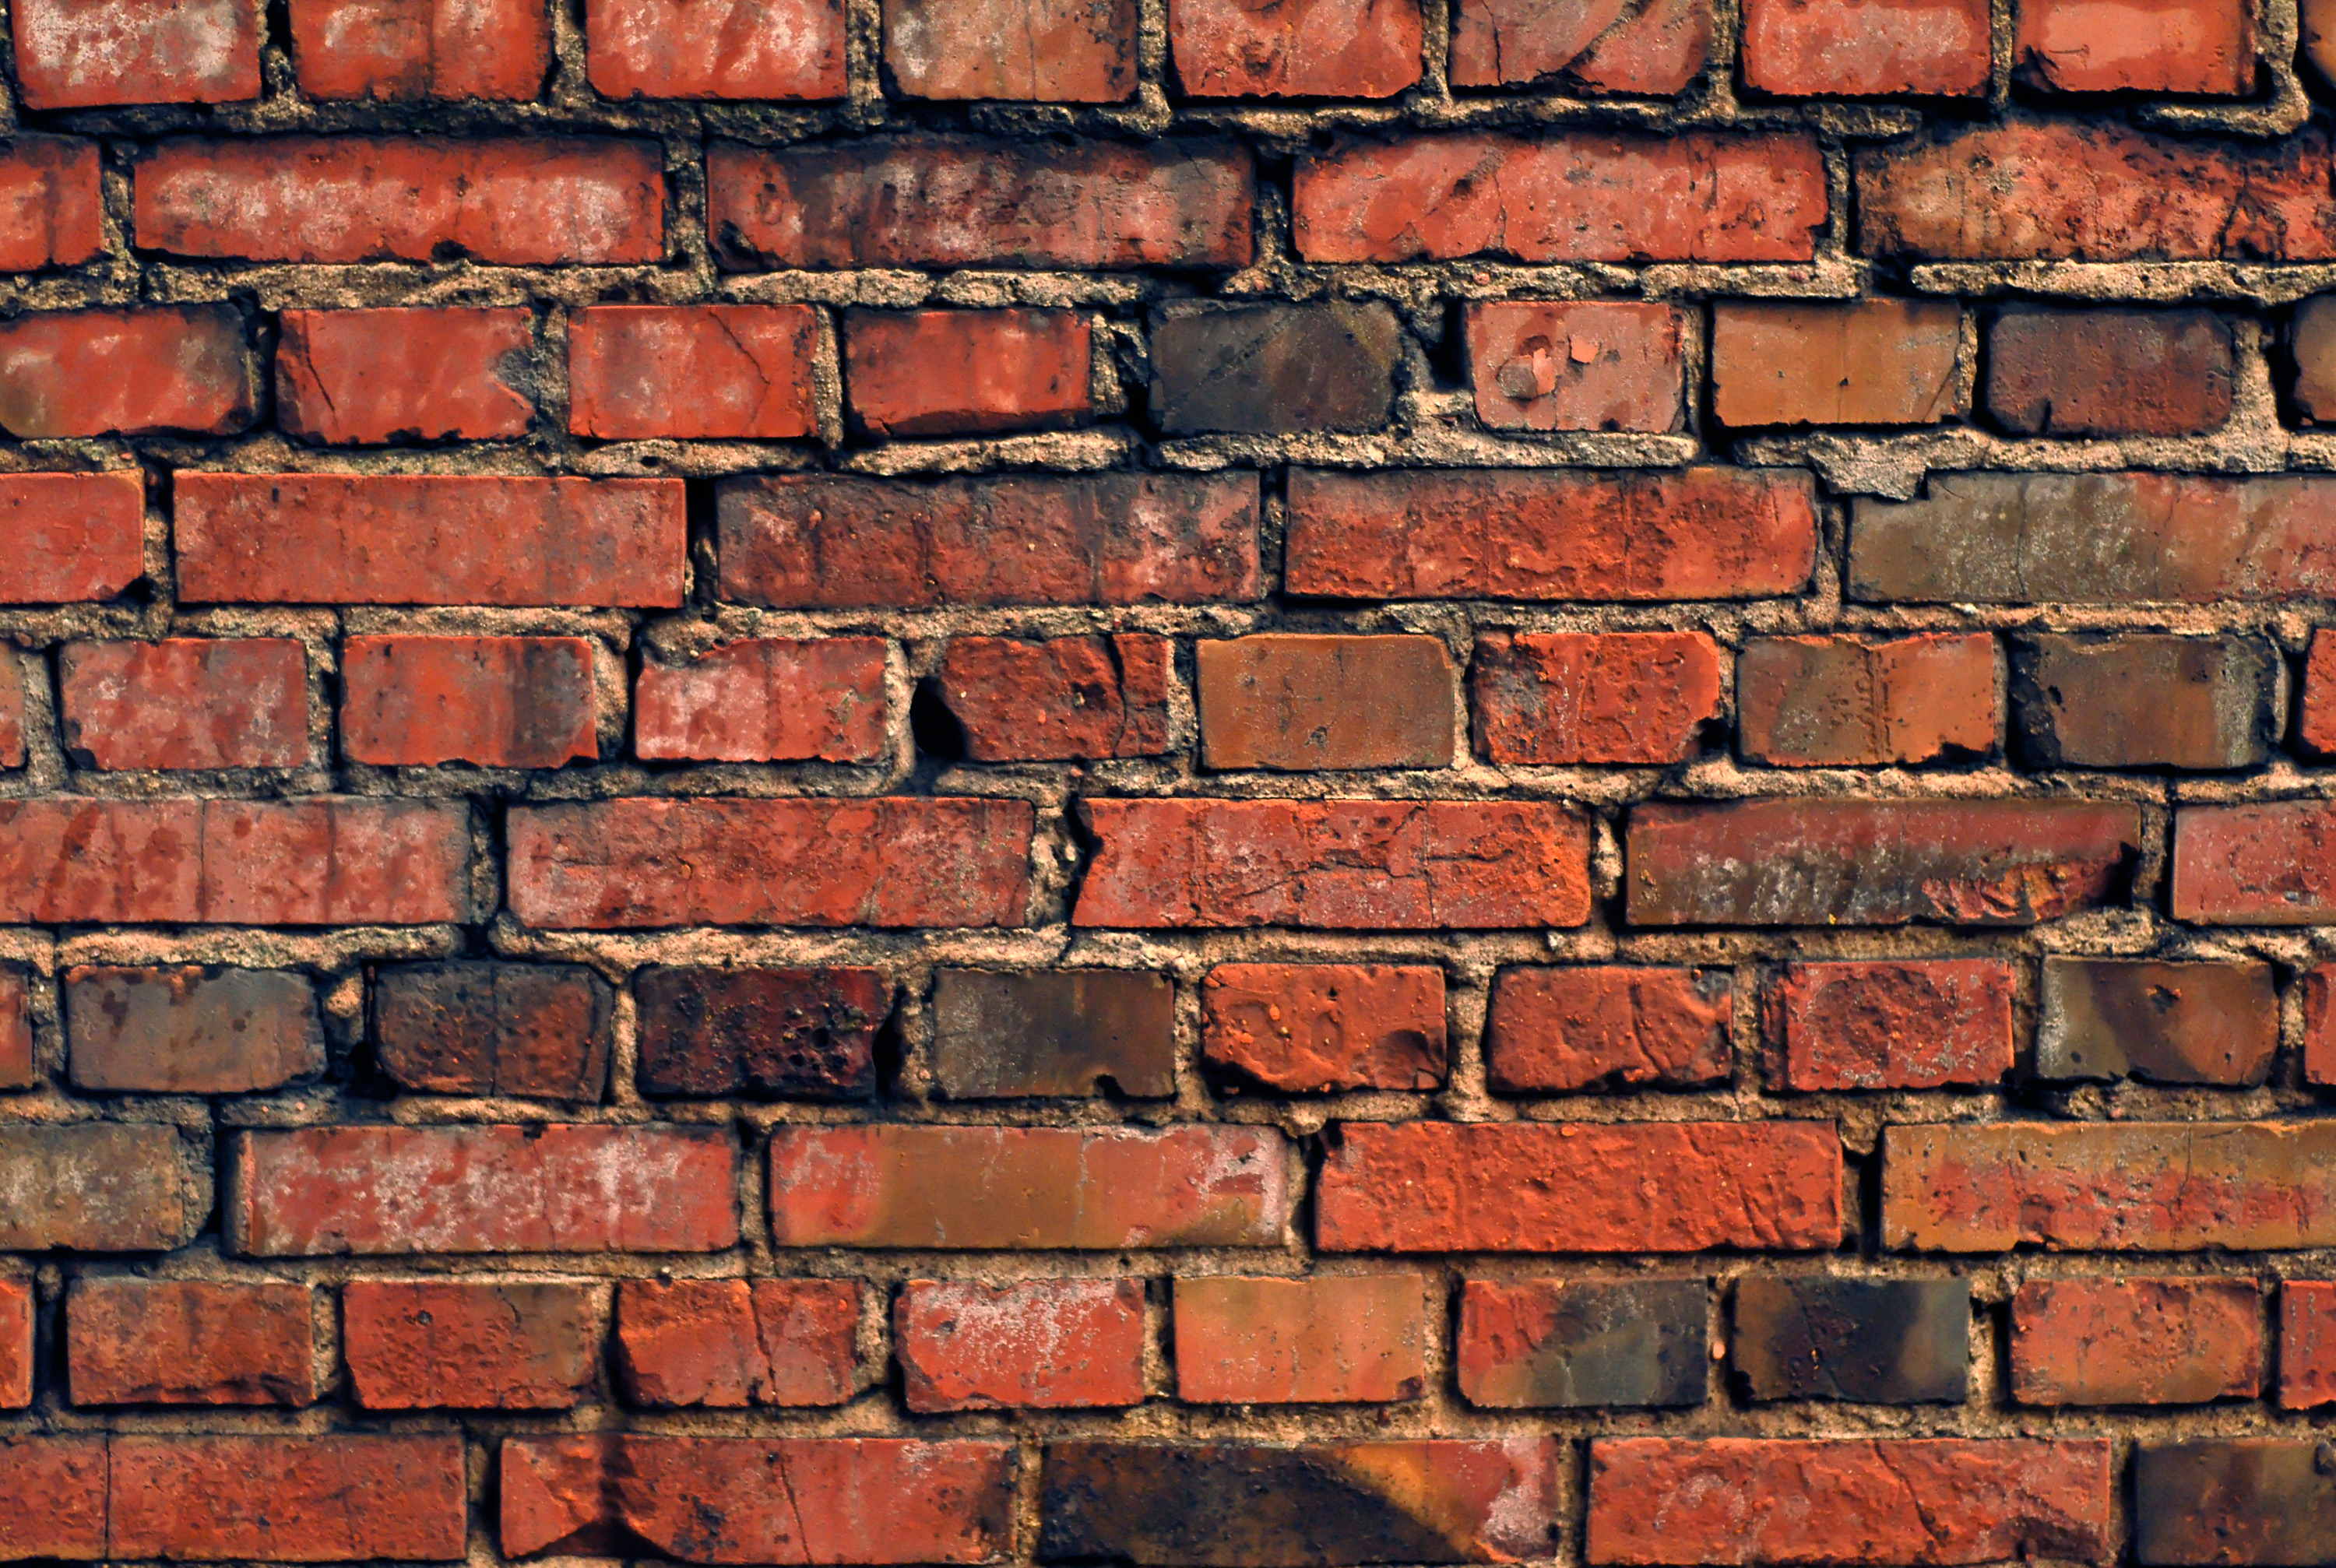 ecefa3dbccecf-download-texture-brick-wallpaper-wpc9201653